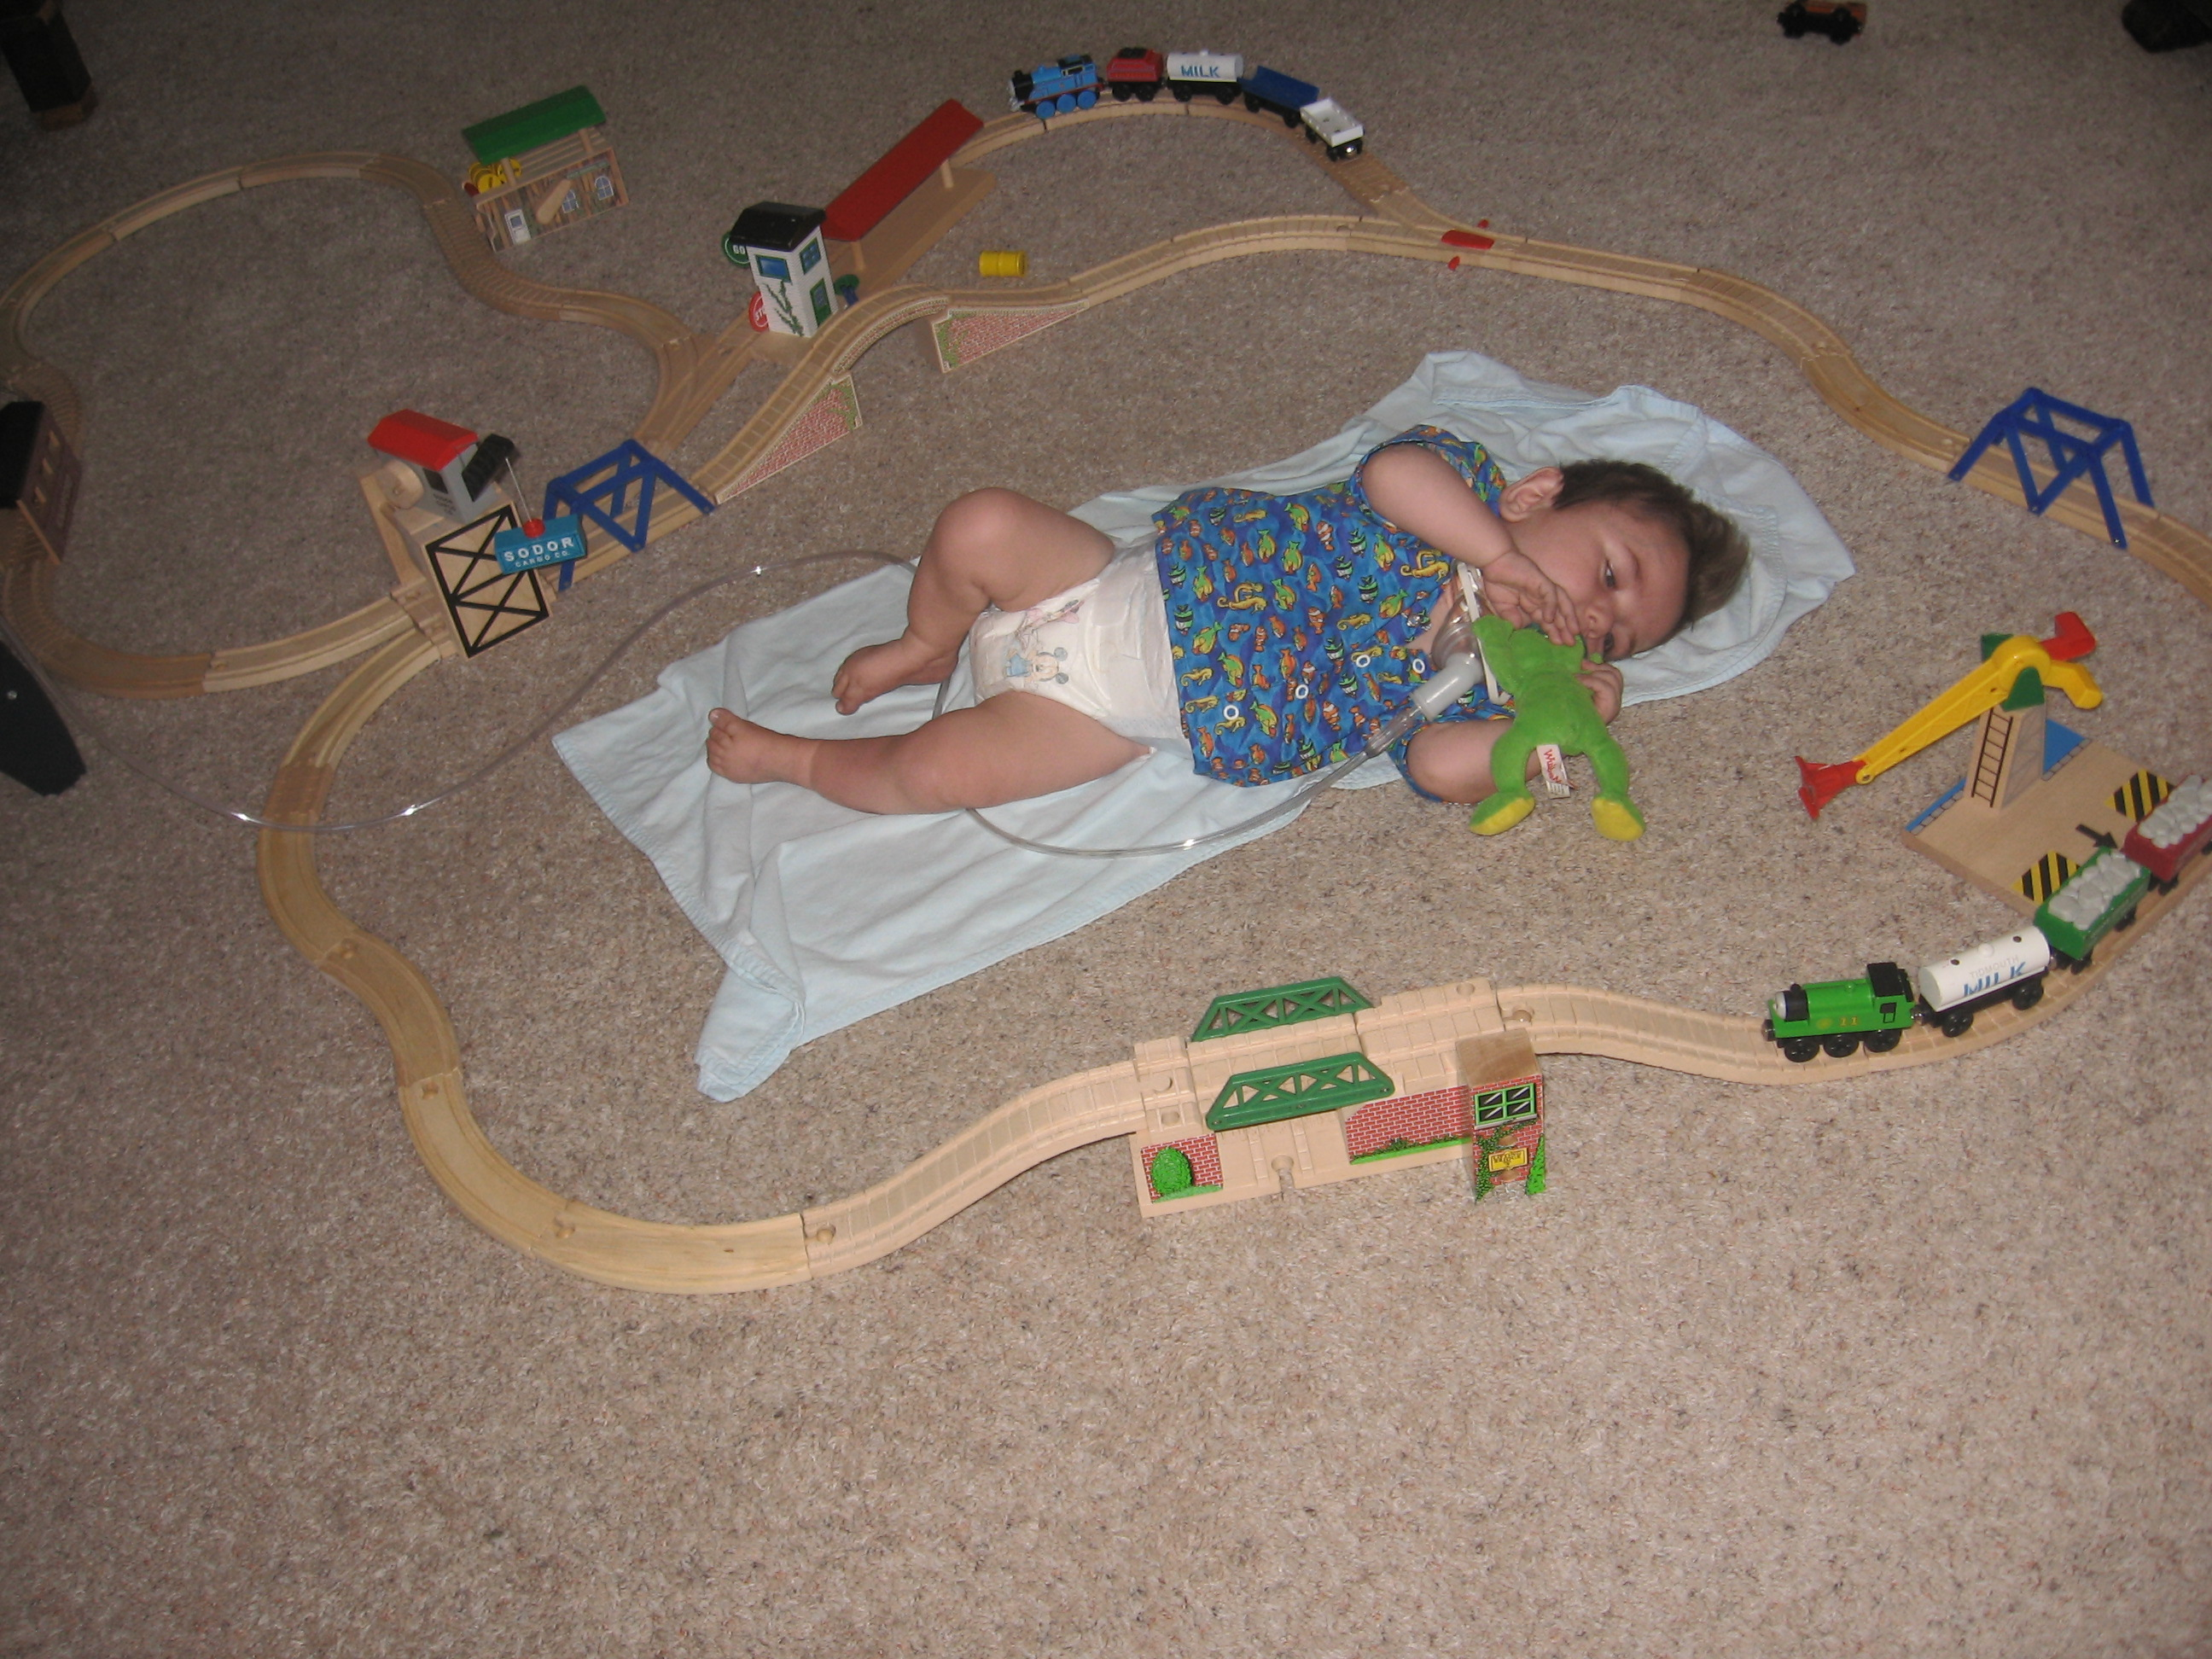 Labor Day:  The big kids decided to introduce Rudy to the Thomas train set and, as you can see, built their track around him.  I think Rudy liked being included! :-)